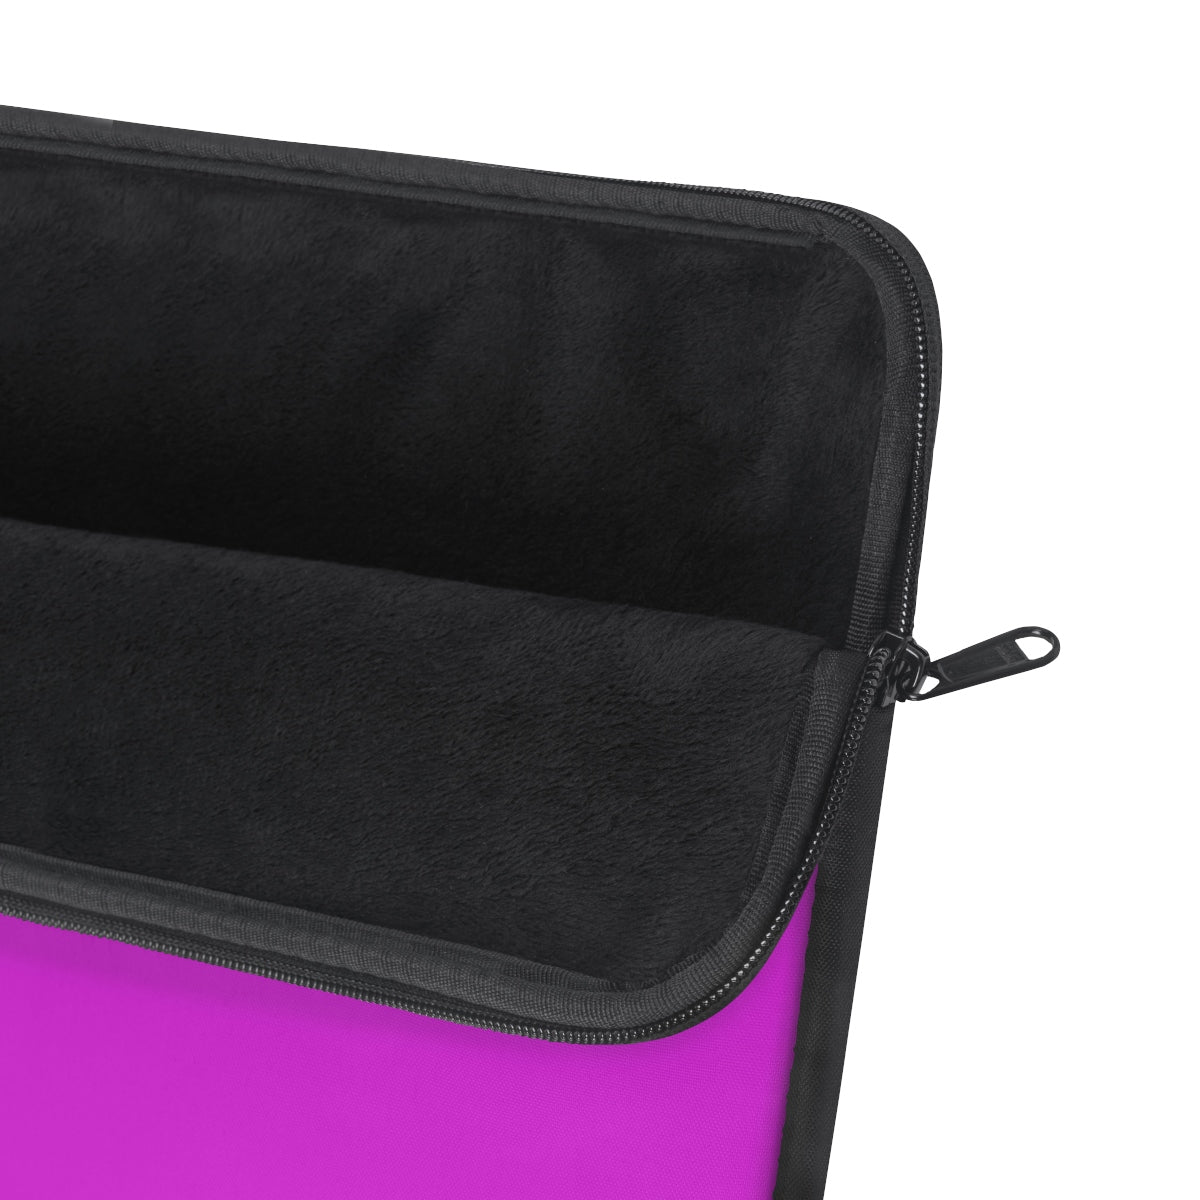 HateLess Laptop Sleeve